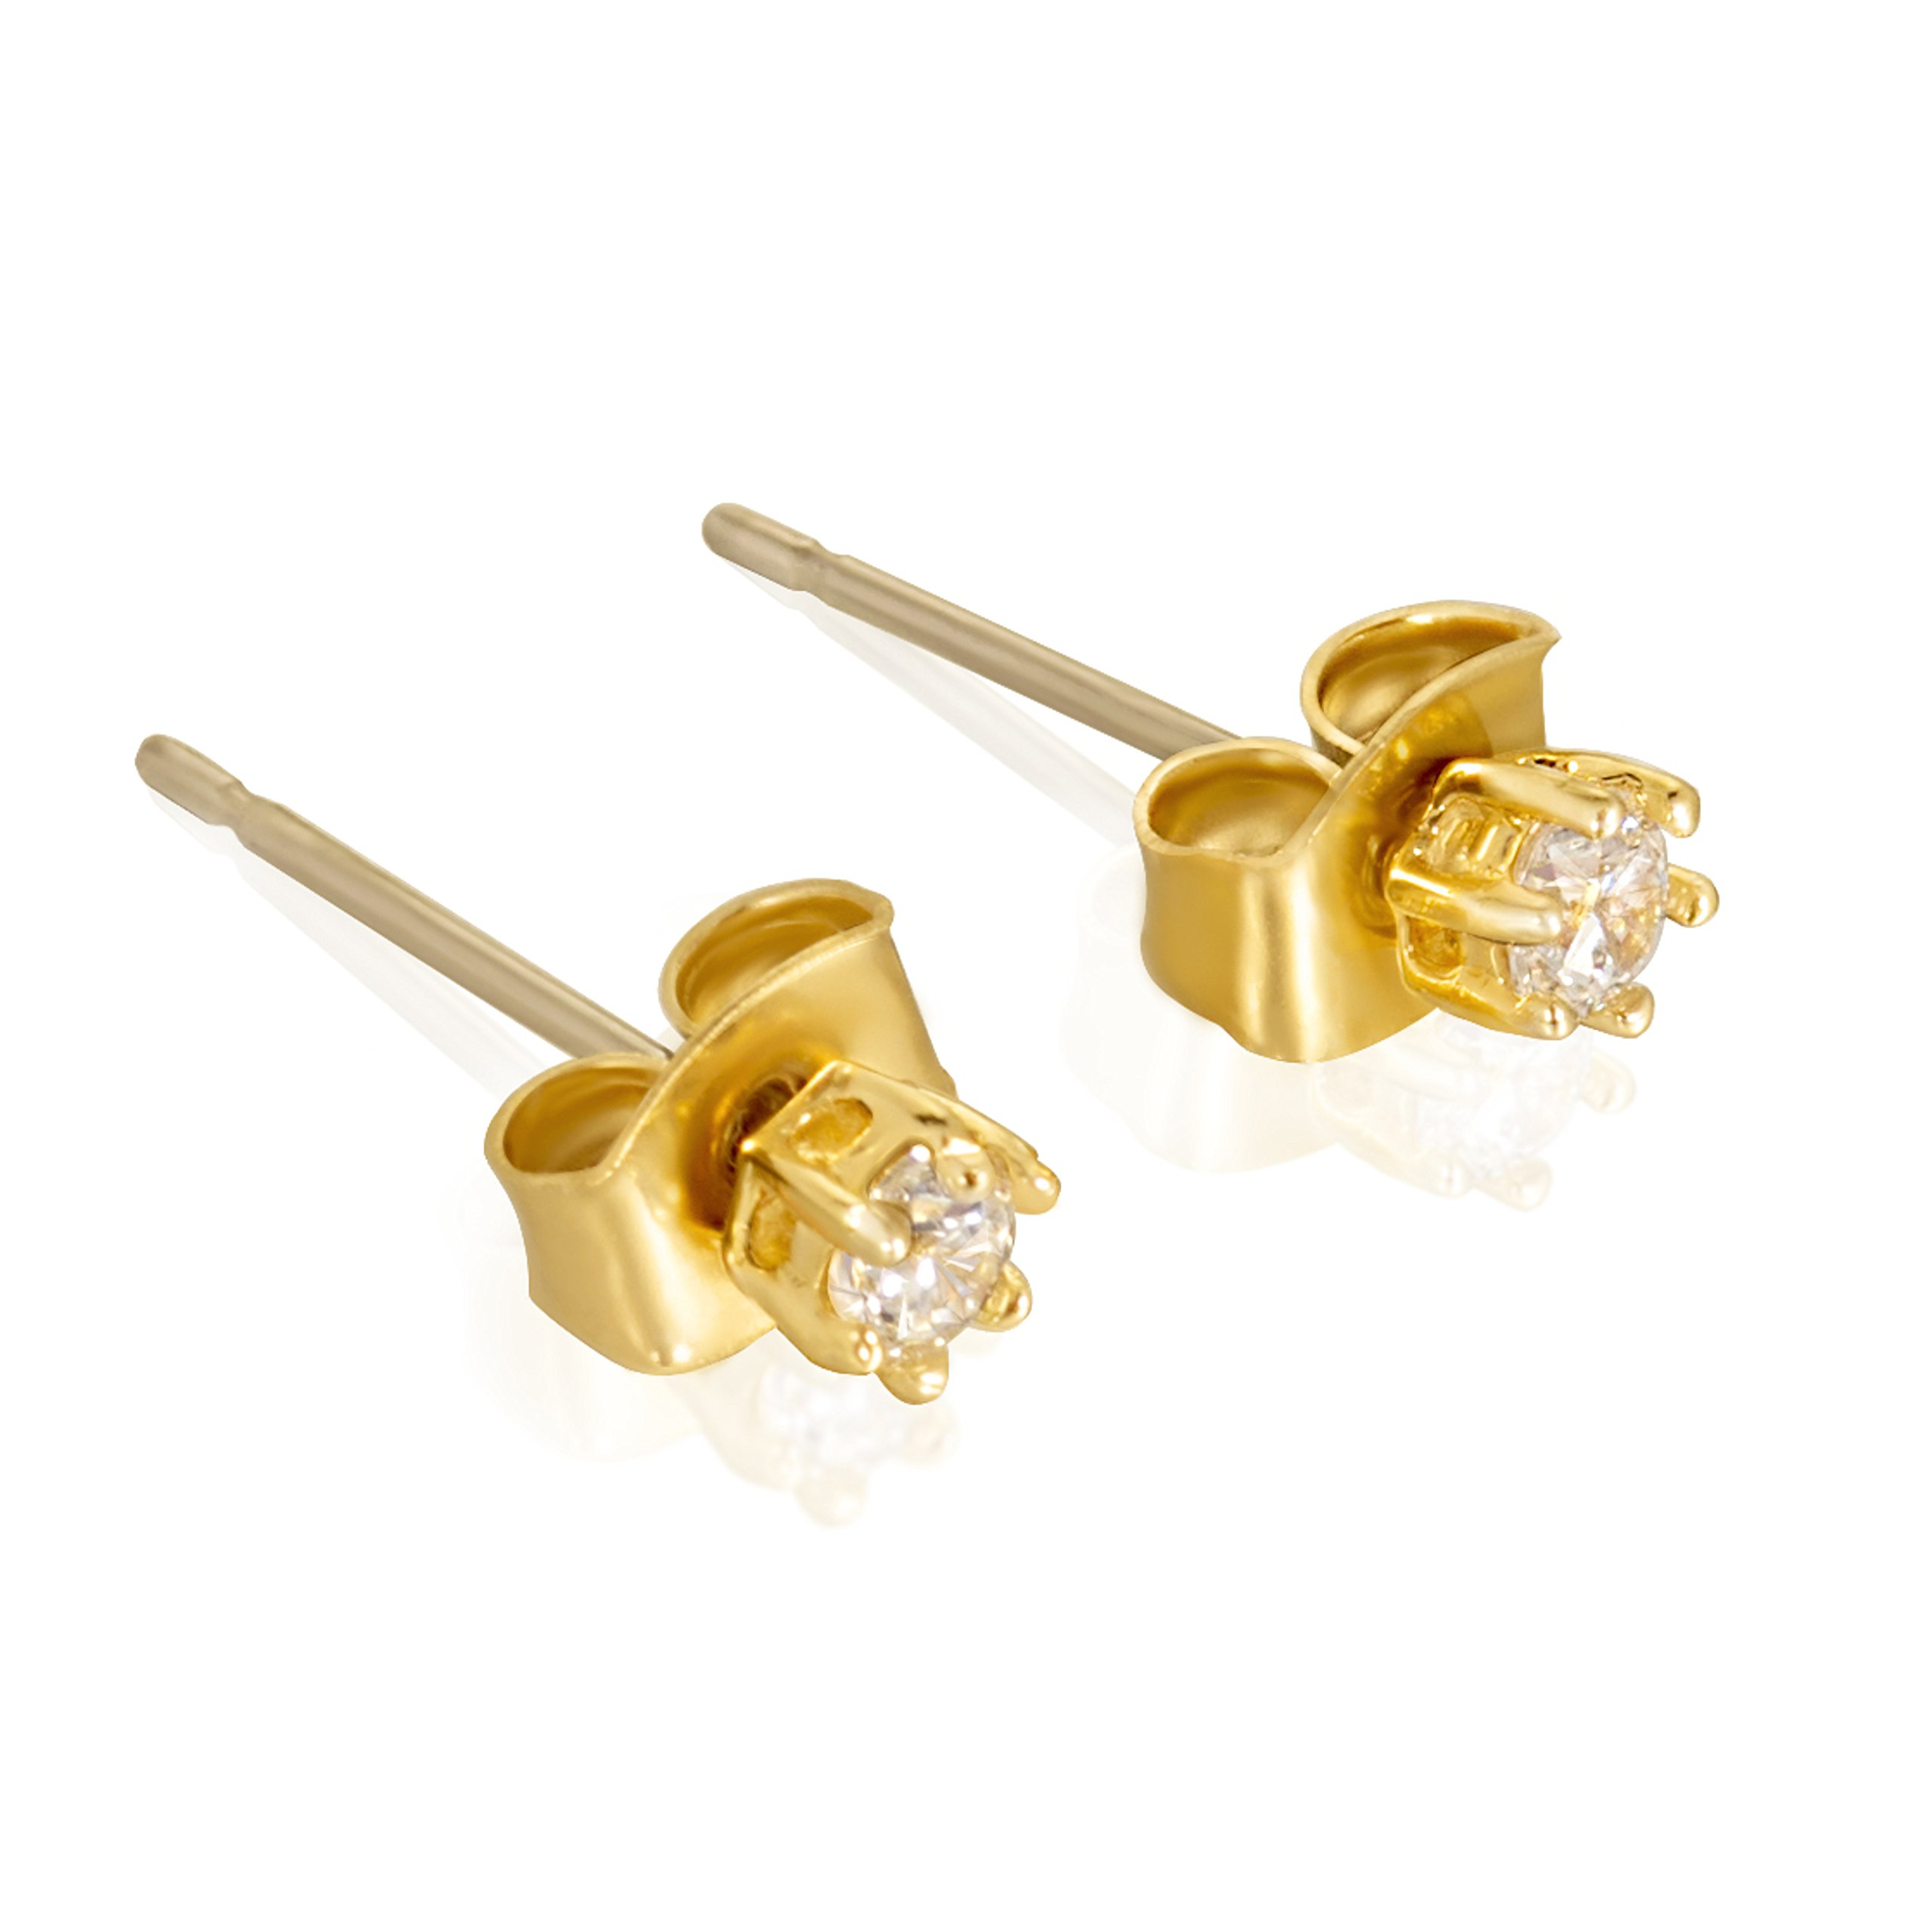 Lifetime Jewelry Cubic Zirconia Stud Earrings 24K Gold Plated with Surgical Steel Posts - Hypoallergenic 3mm CZ Studs - Safe for Sensitive Ears